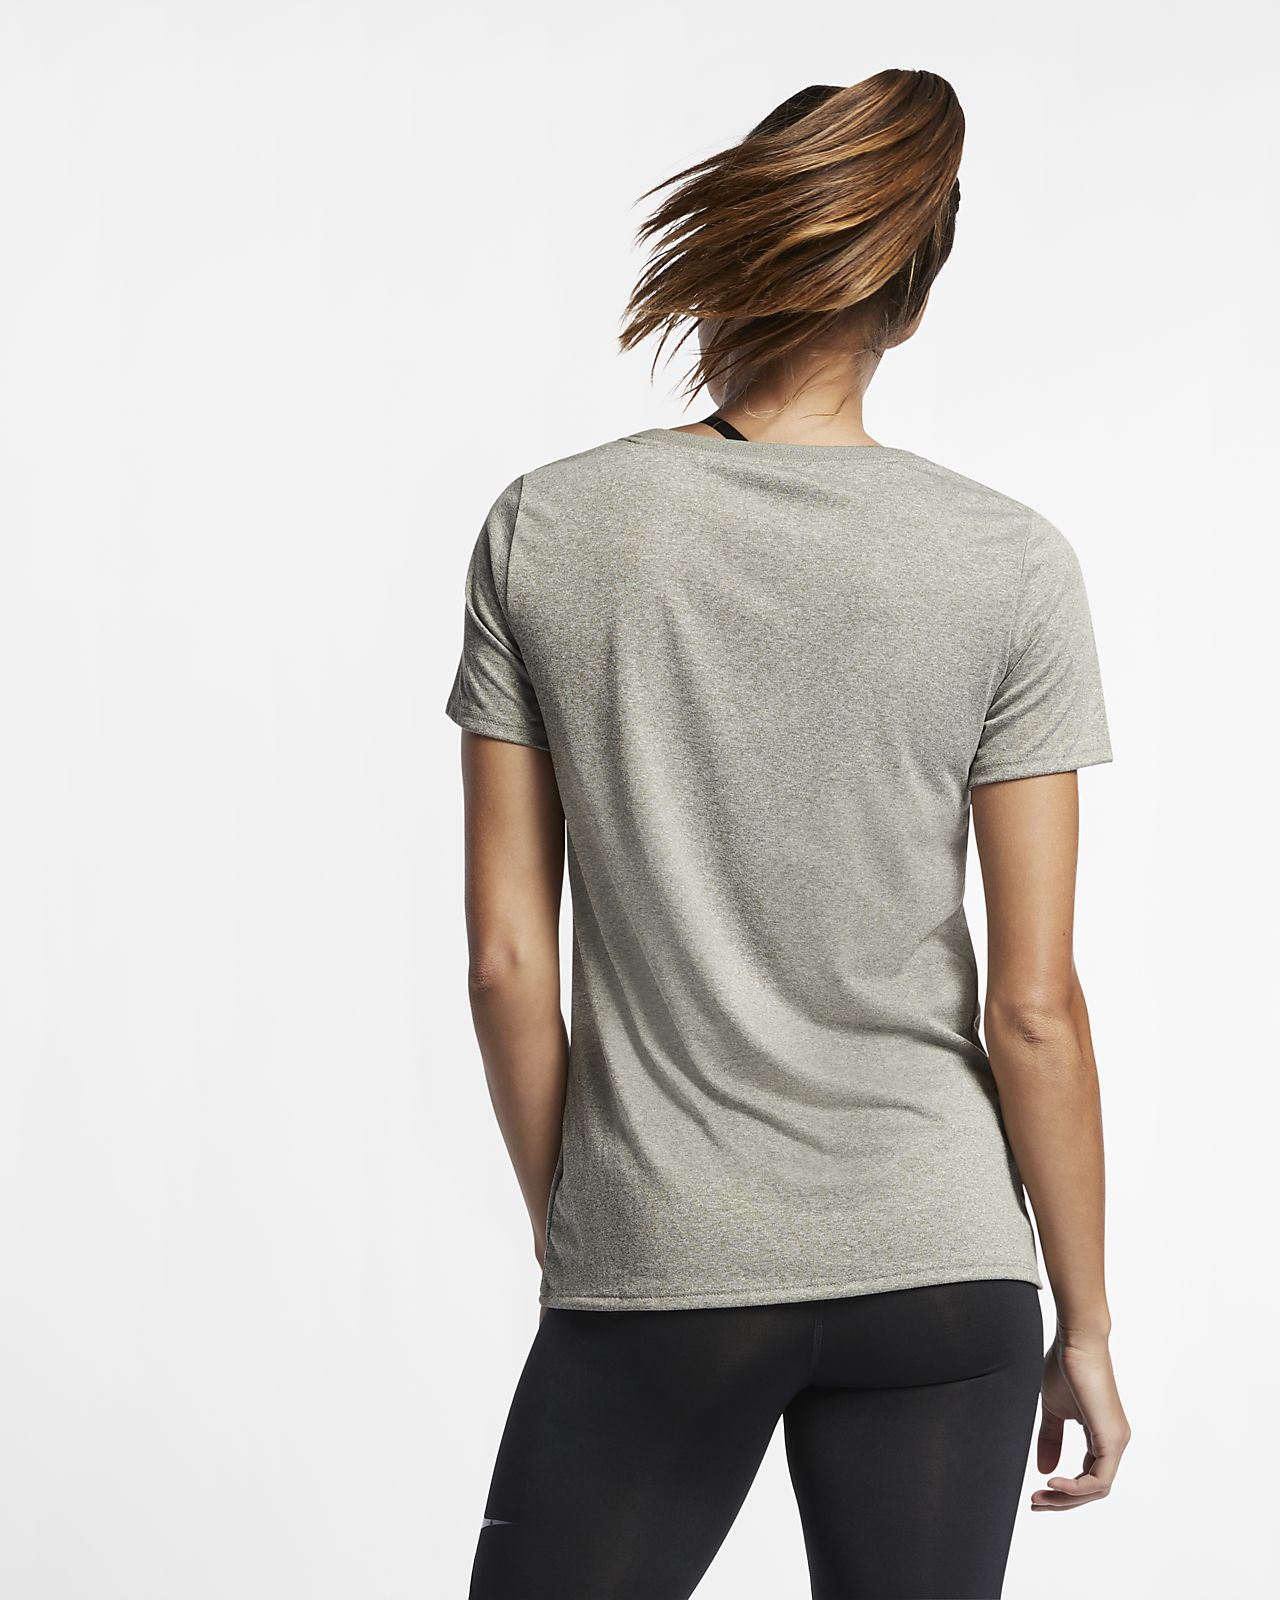 Women's Training T-Shirt. Nike Dri-FIT